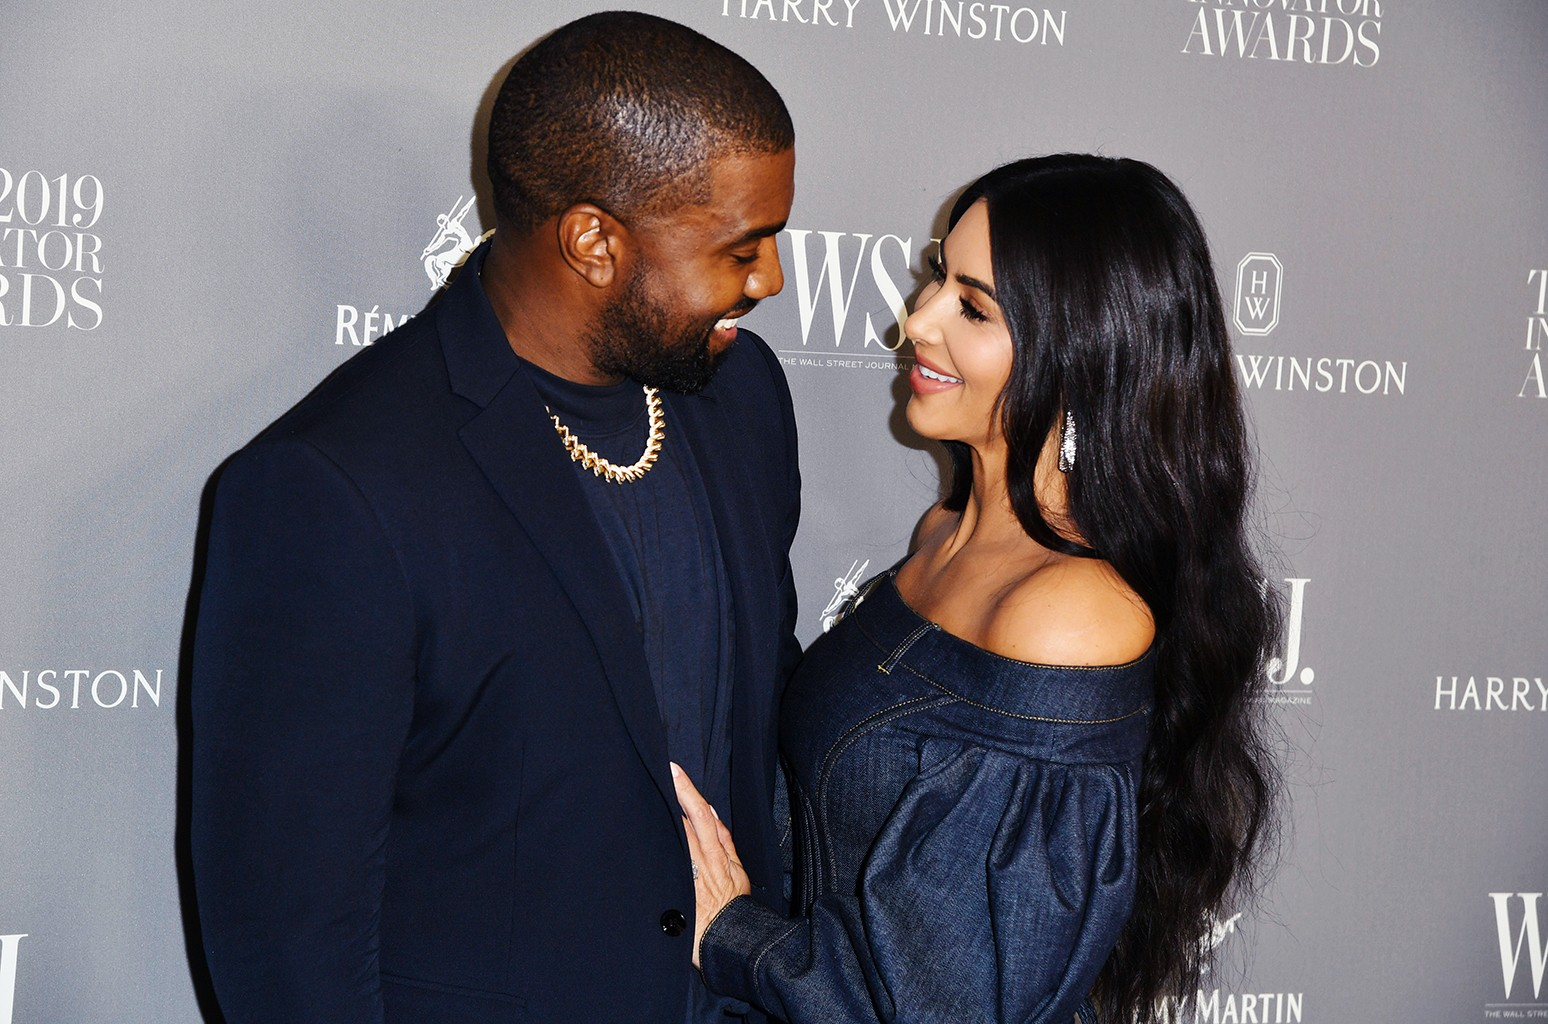 Kanye West Gifts Kim Kardashian With a Hologram of Her Late Father for Her Birthday